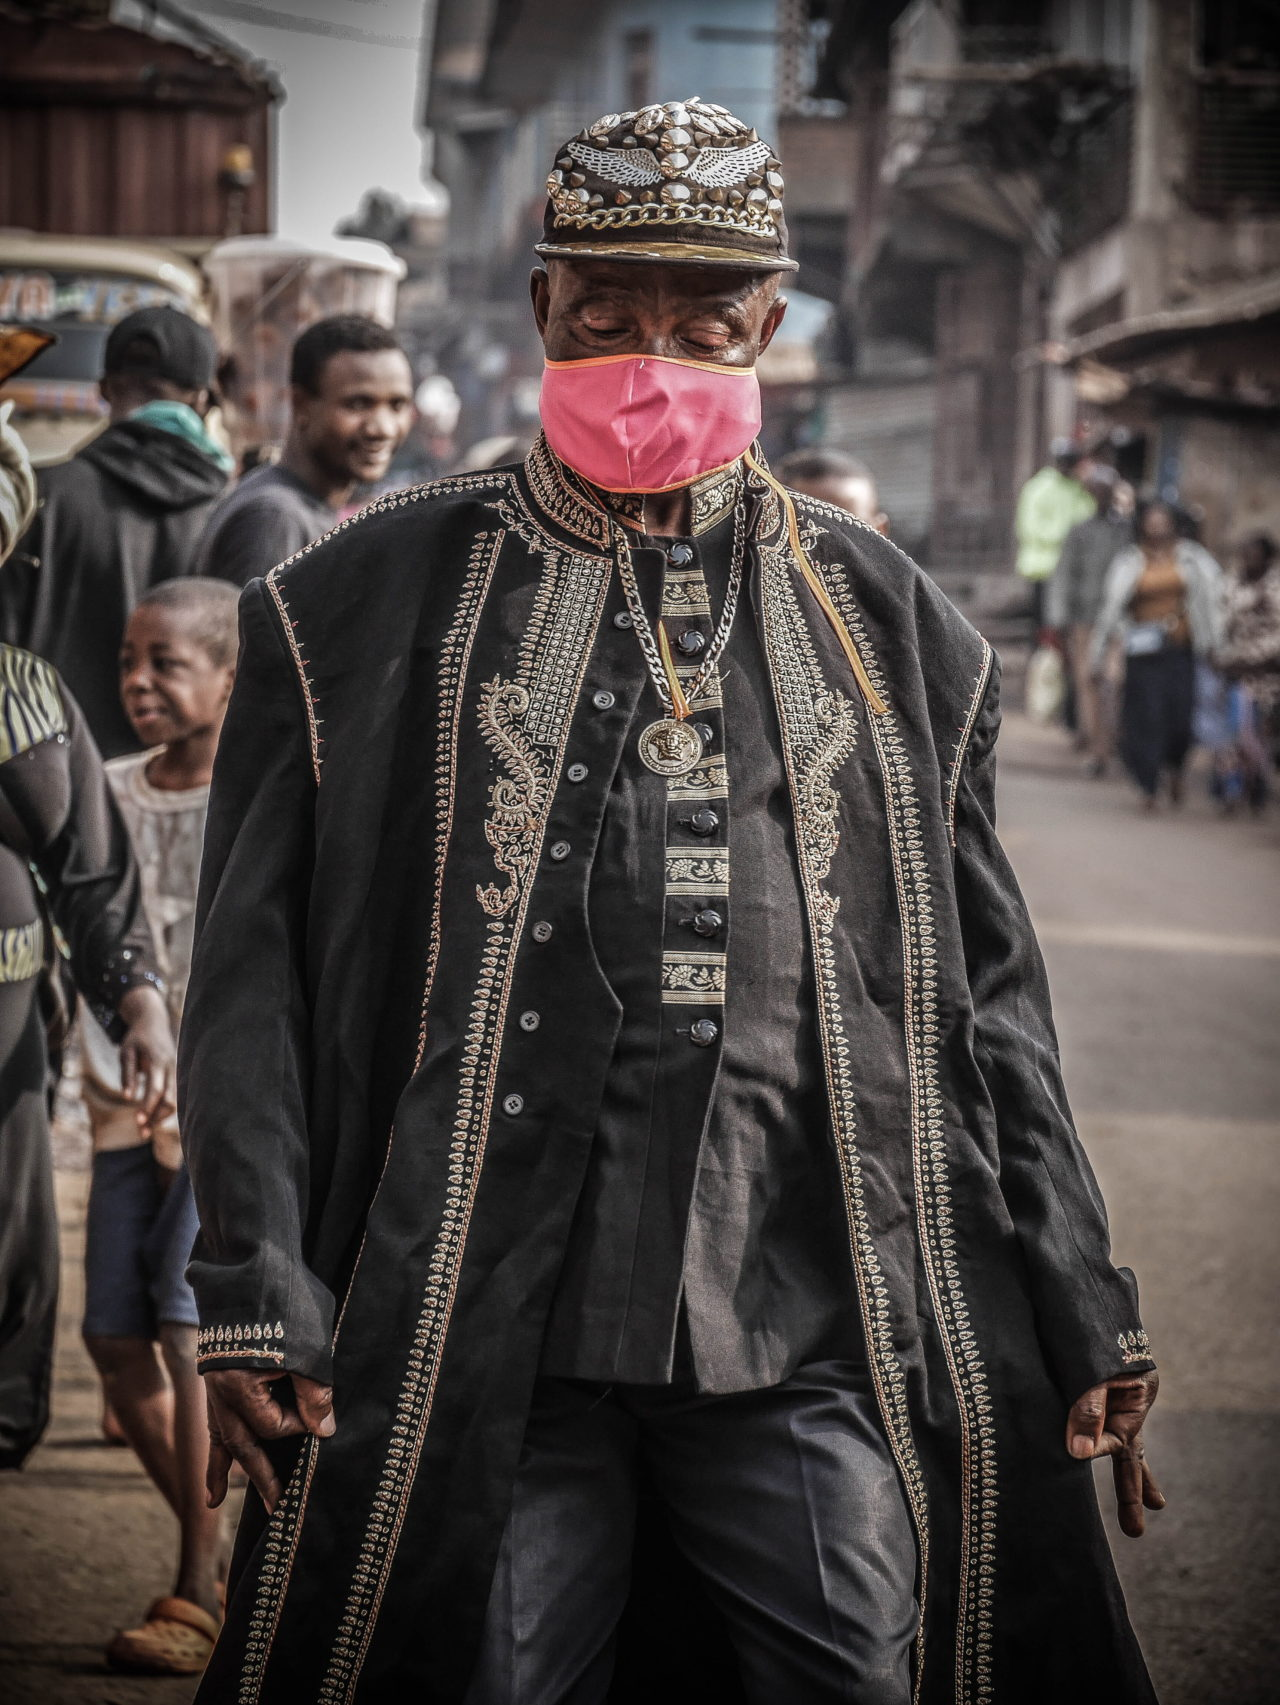 Bukavu, DRC, August 2020 Sapeur Delphin Kalita Mambo, 61, who goes by the name Niarcos Kalita, shows off his style on a street in Bukavu this month.  Raissa Karama Rwizibuka for Fondation Carmignac